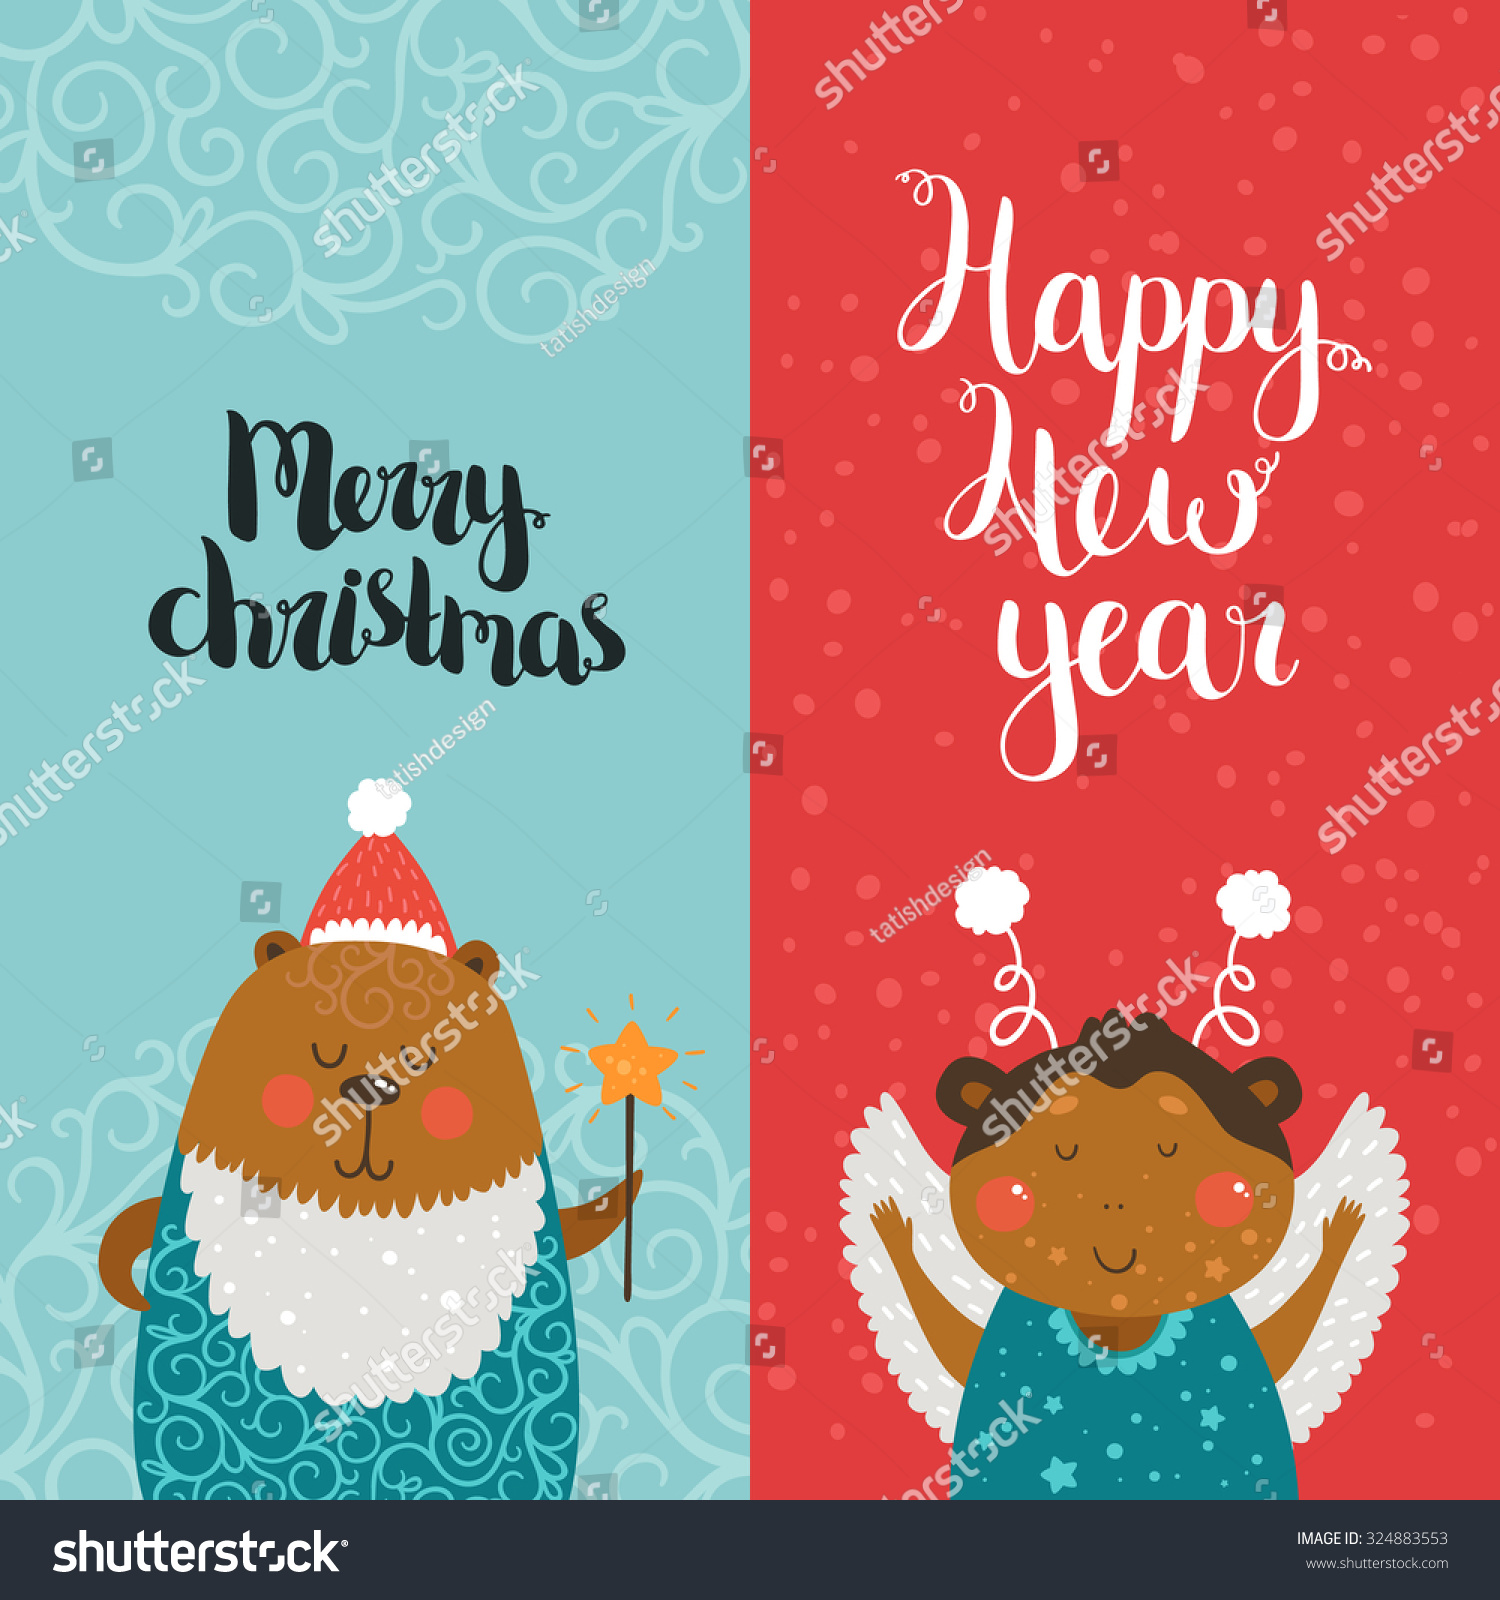 Merry Christmas Happy New Year Cards Stock Vector (Royalty Free ...